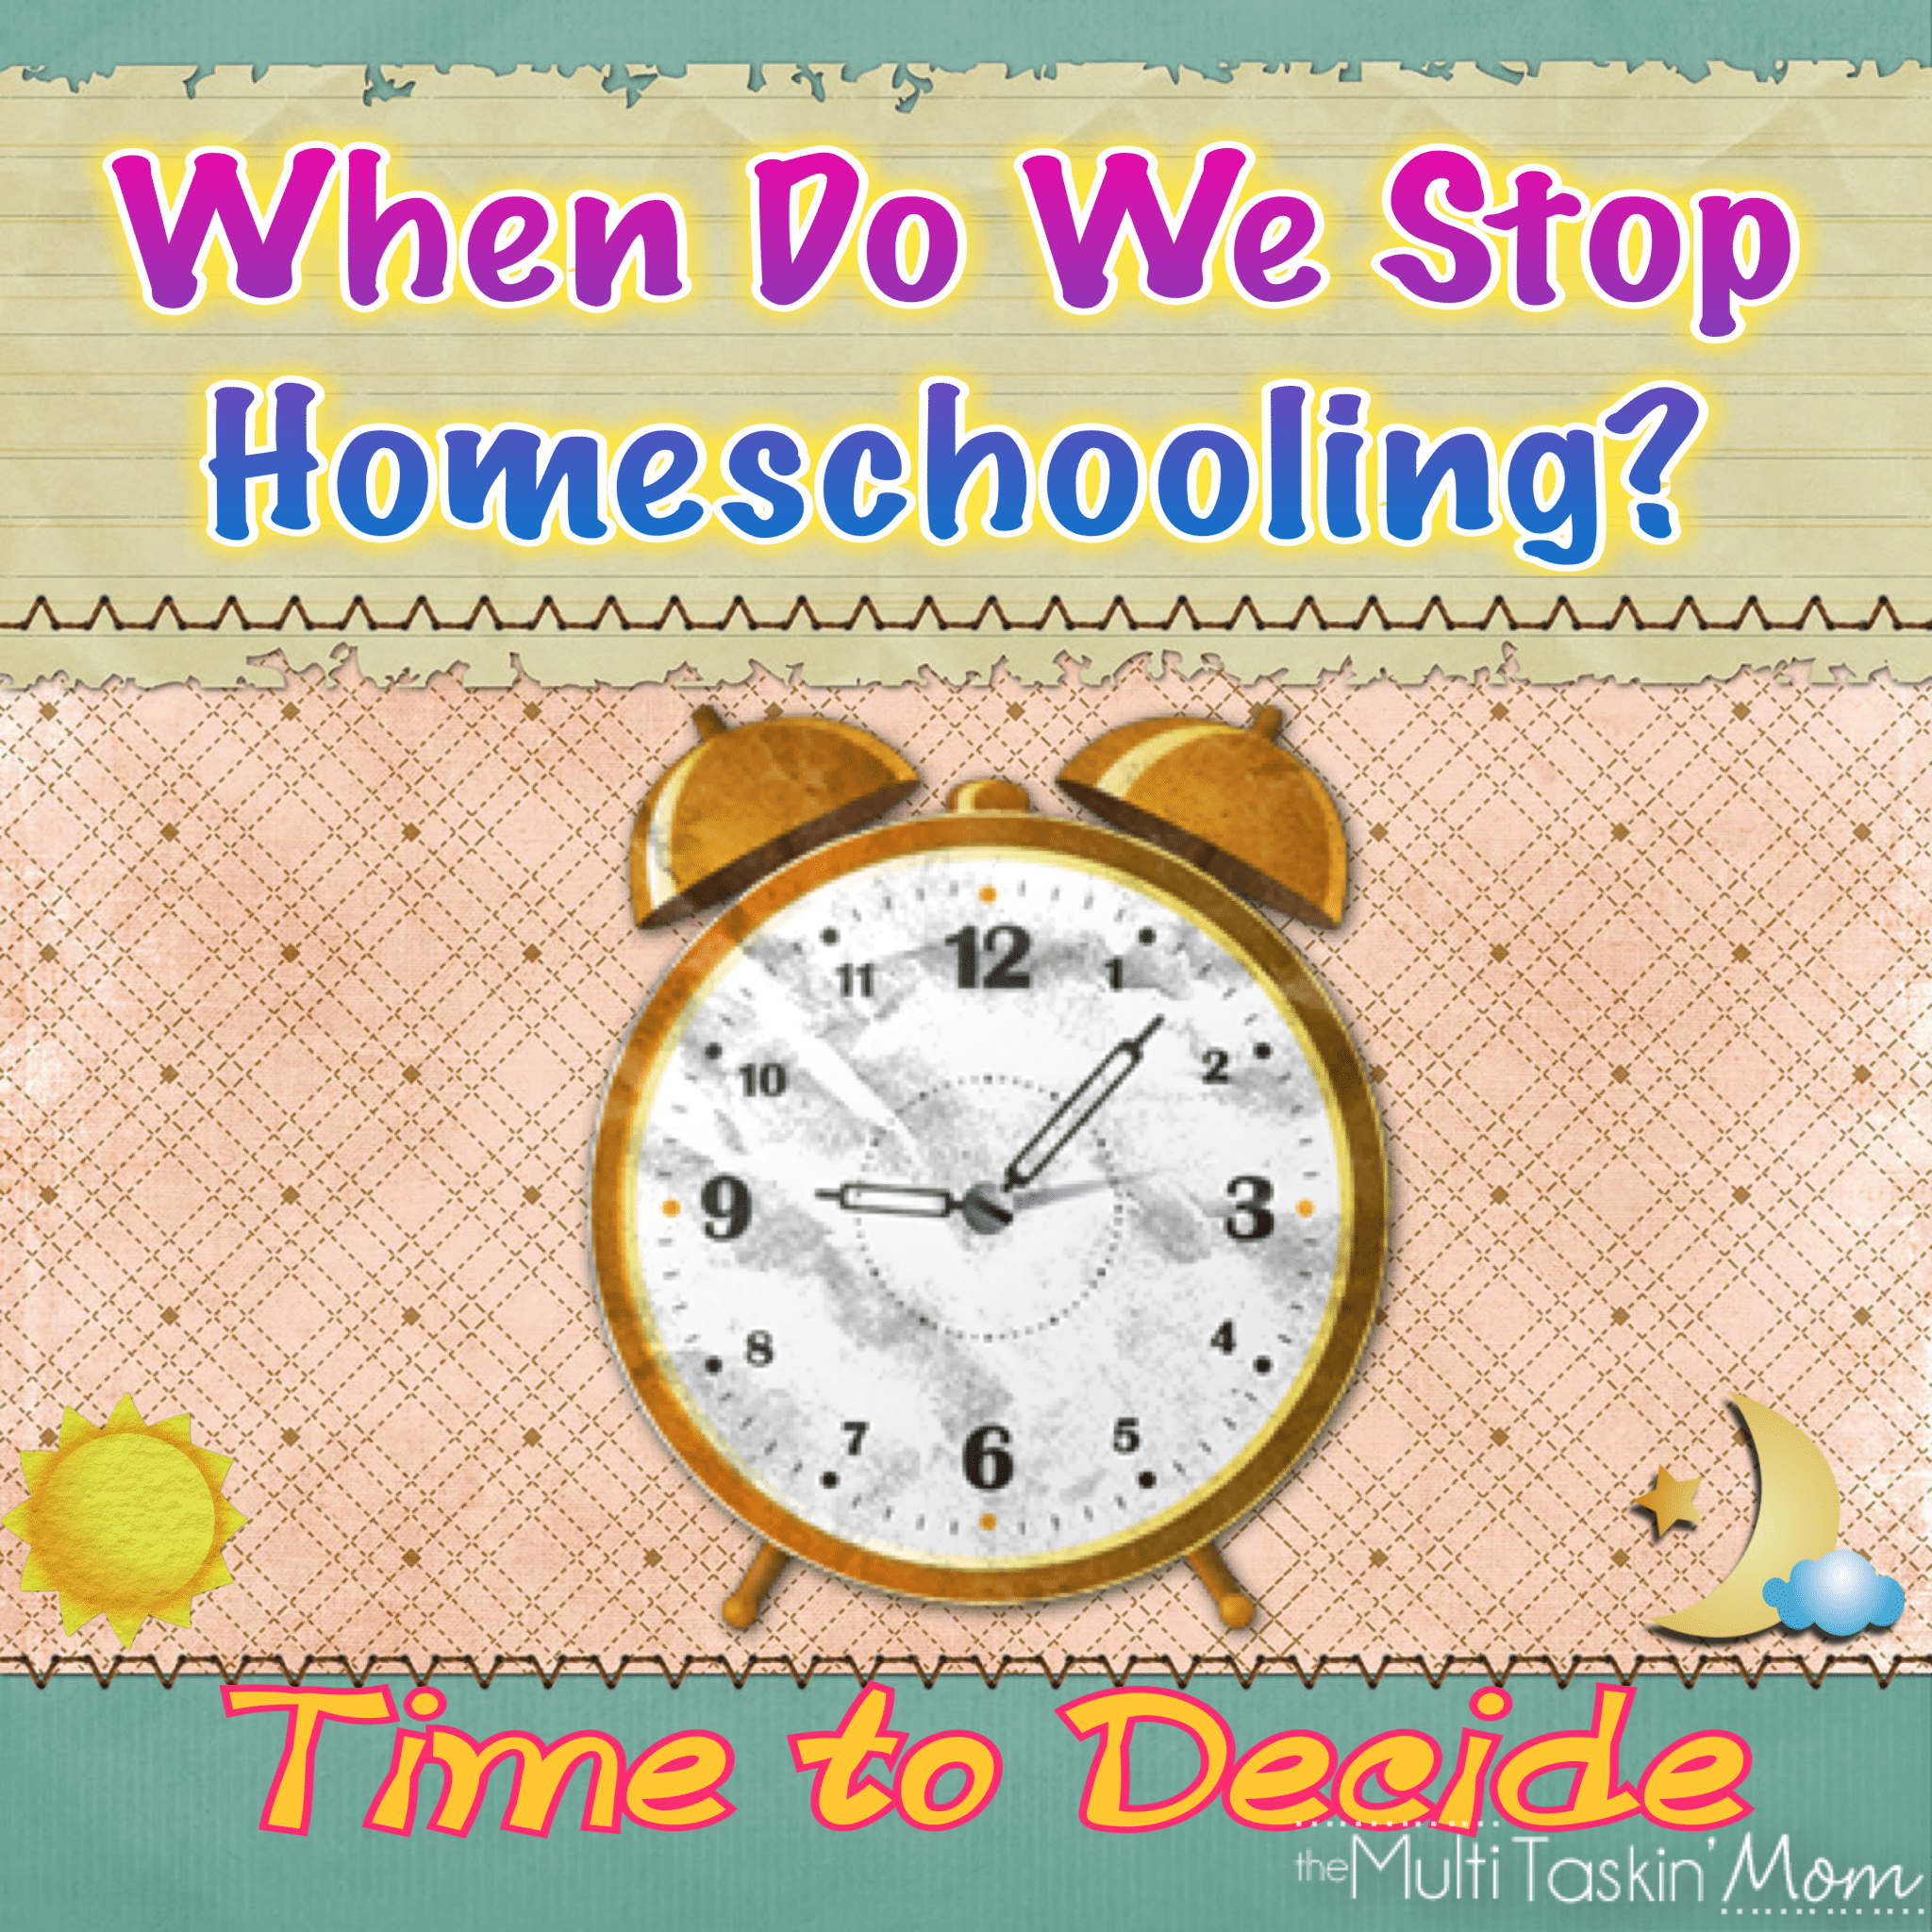 When Do We Stop Homeschooling? Time to Decide